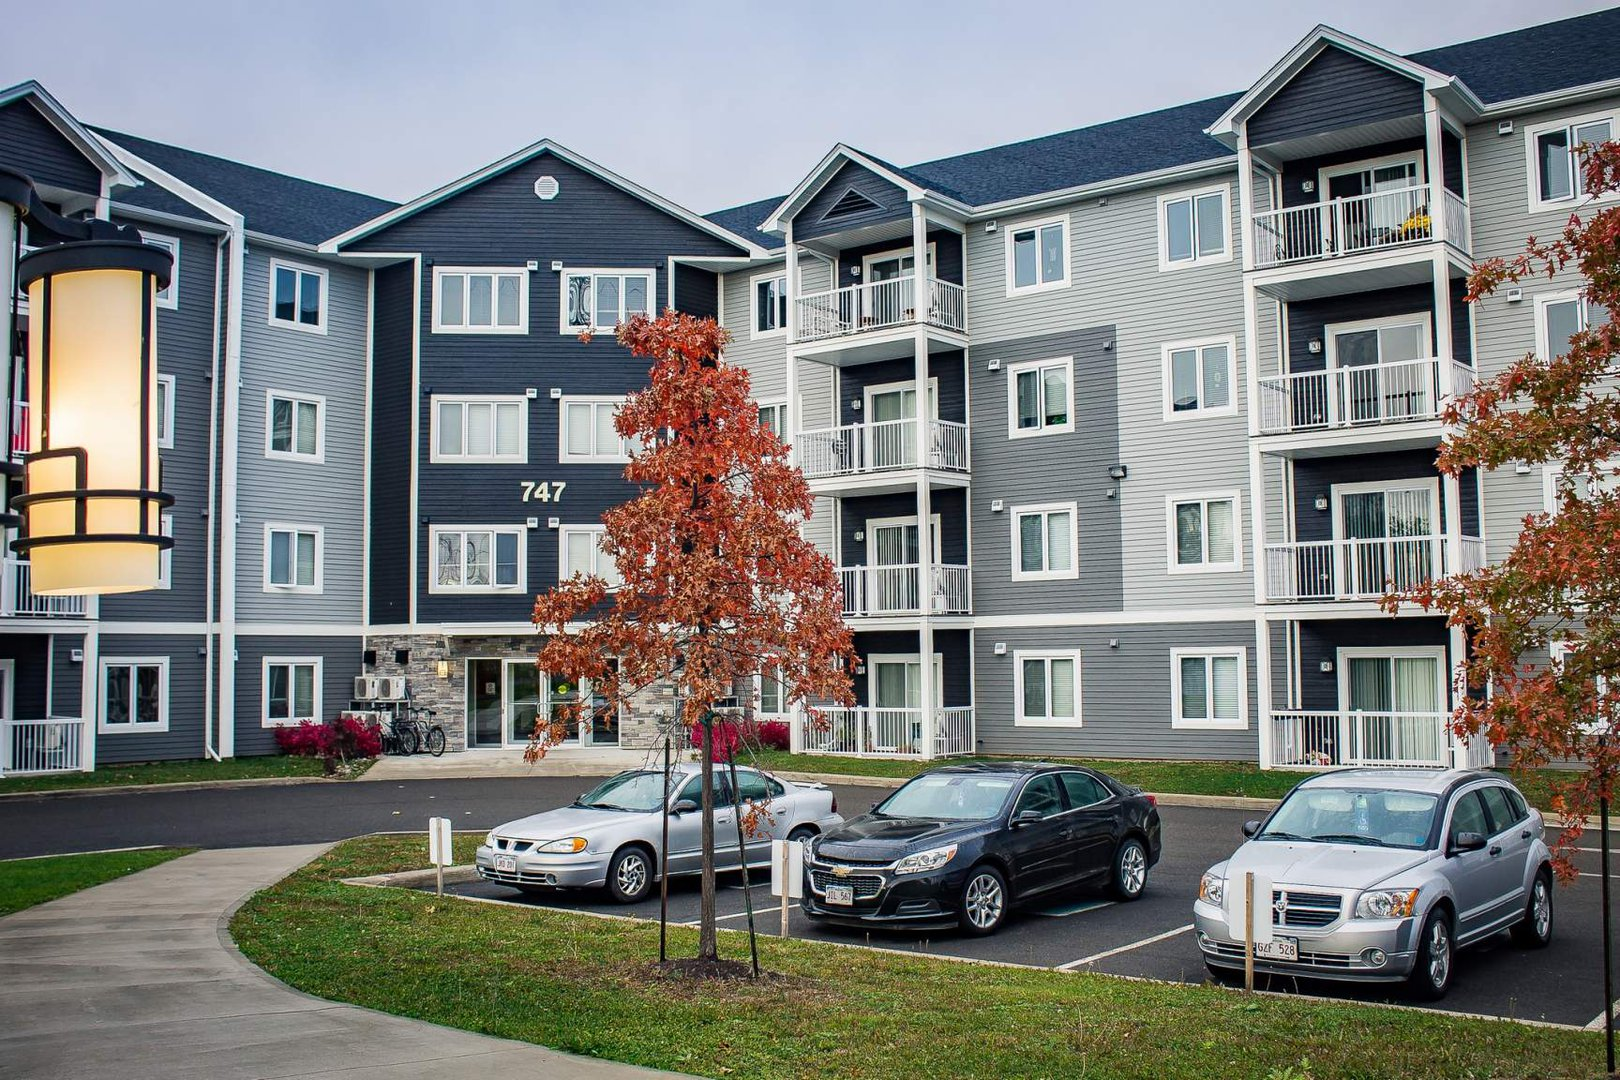 Mid-Rise-Apartment for rent at 747 Coverdale Road, Moncton, NB. This is the outdoor building with lawn.